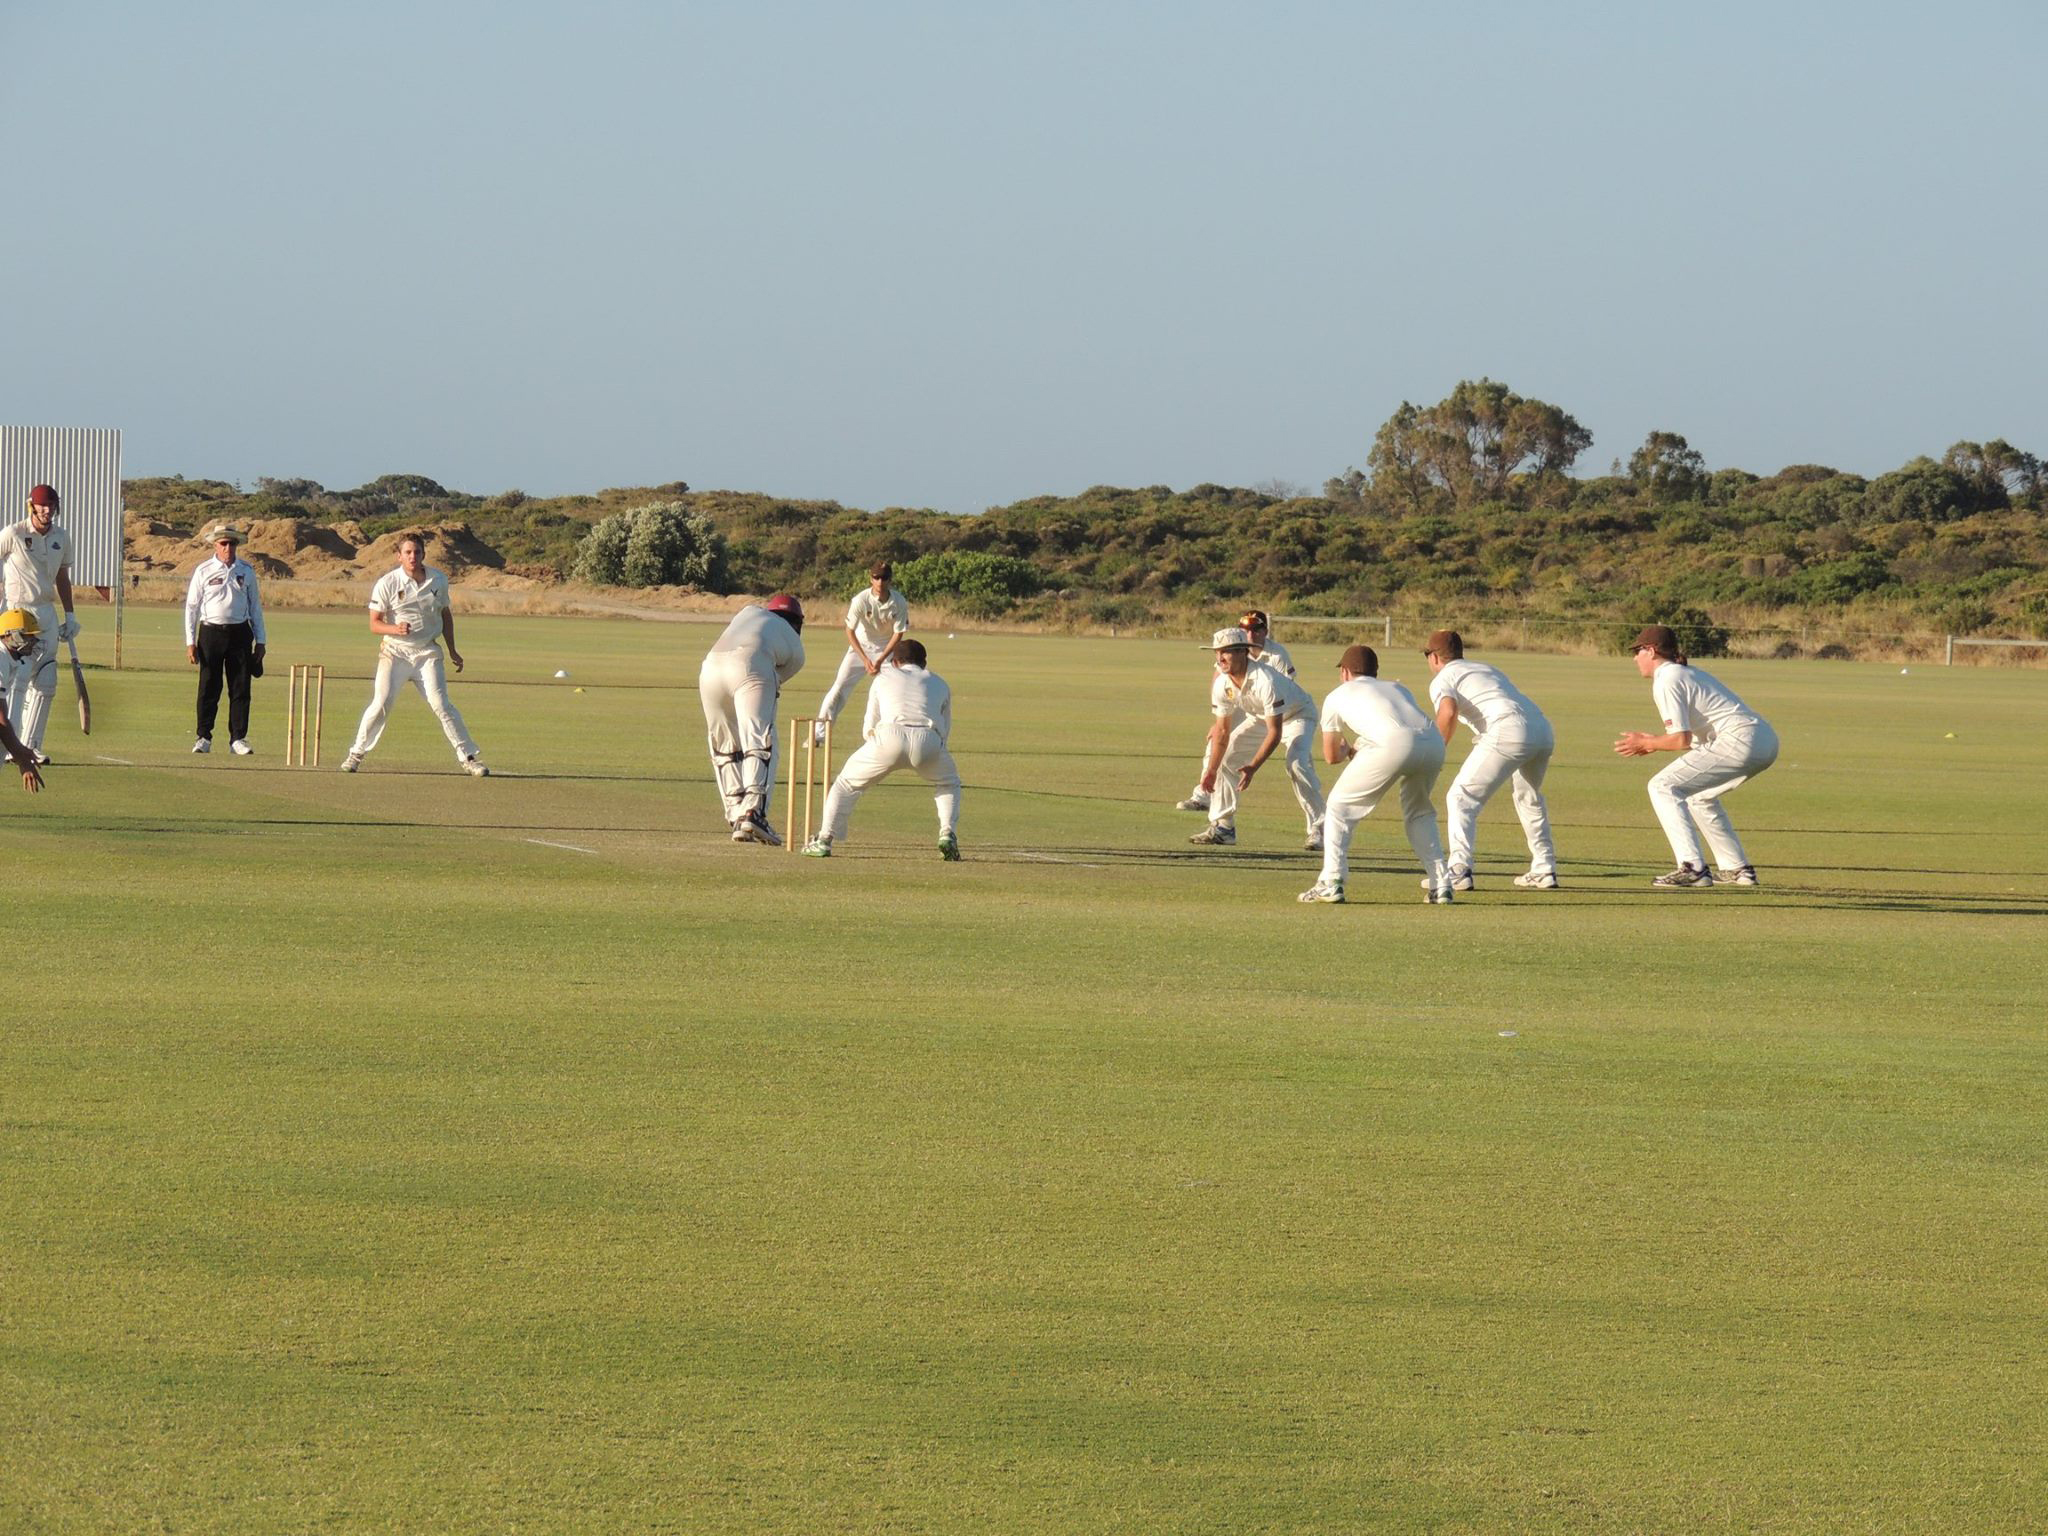 Mt Lawley recorded their first win of the season against Rockingham-Mandurah.